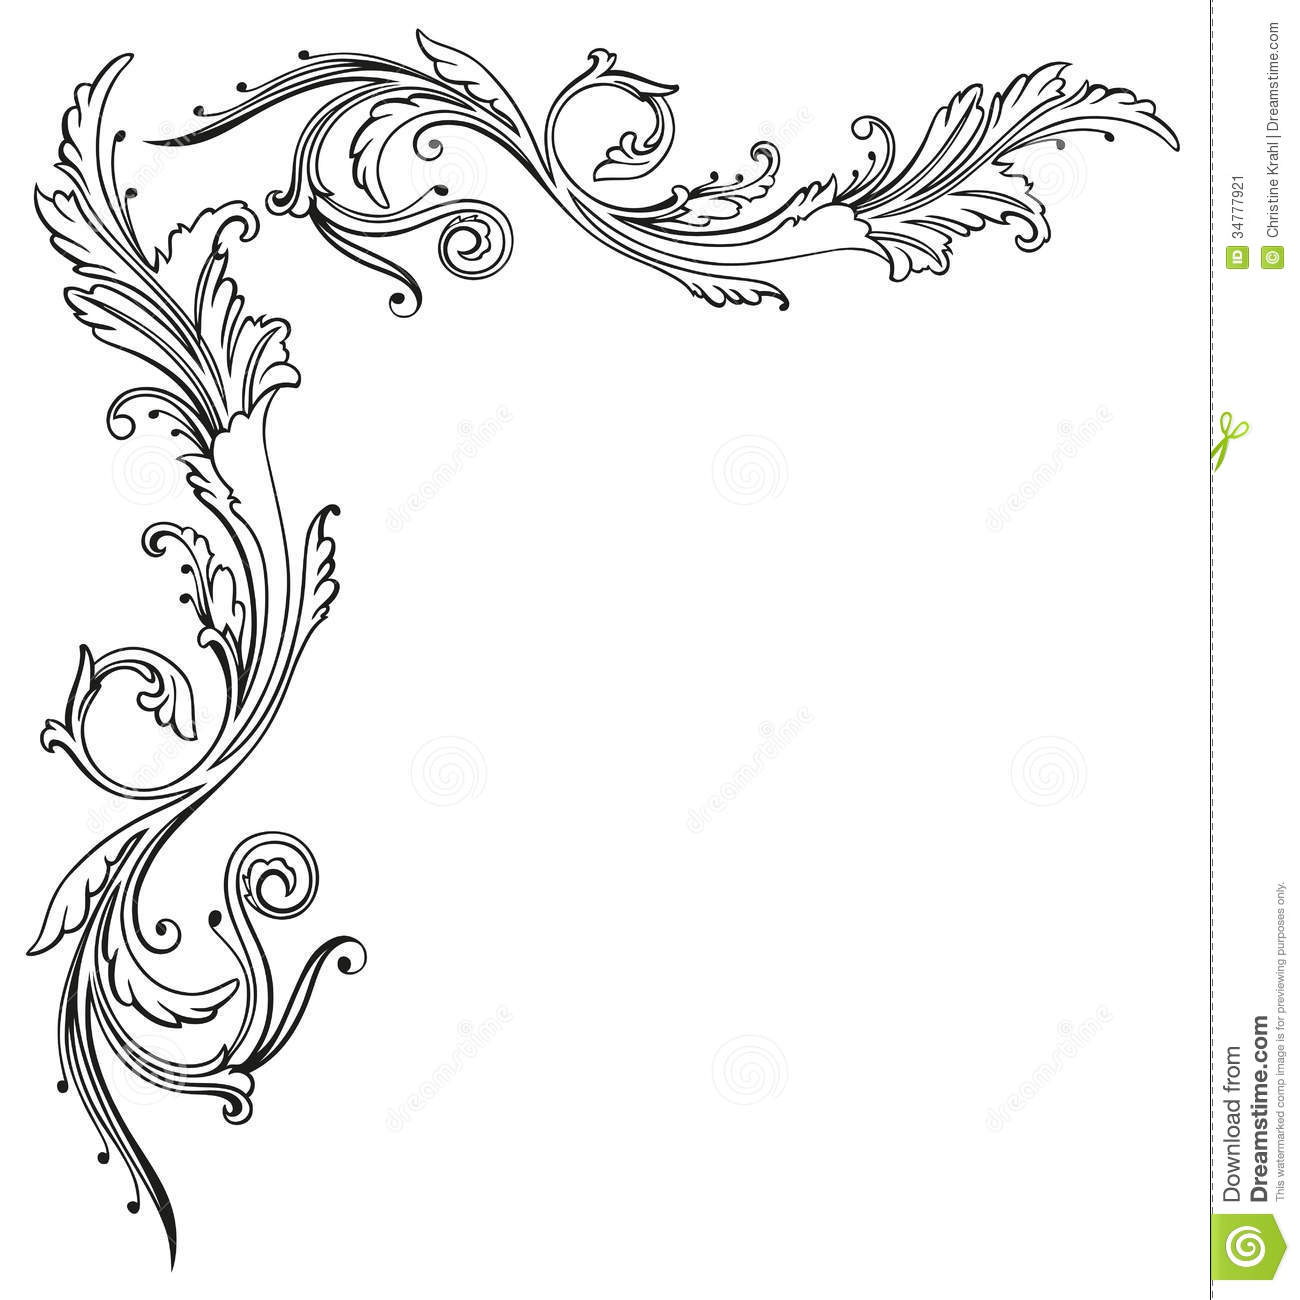 Download Vintage Floral Border Stock Vector Illustration Of Drawing